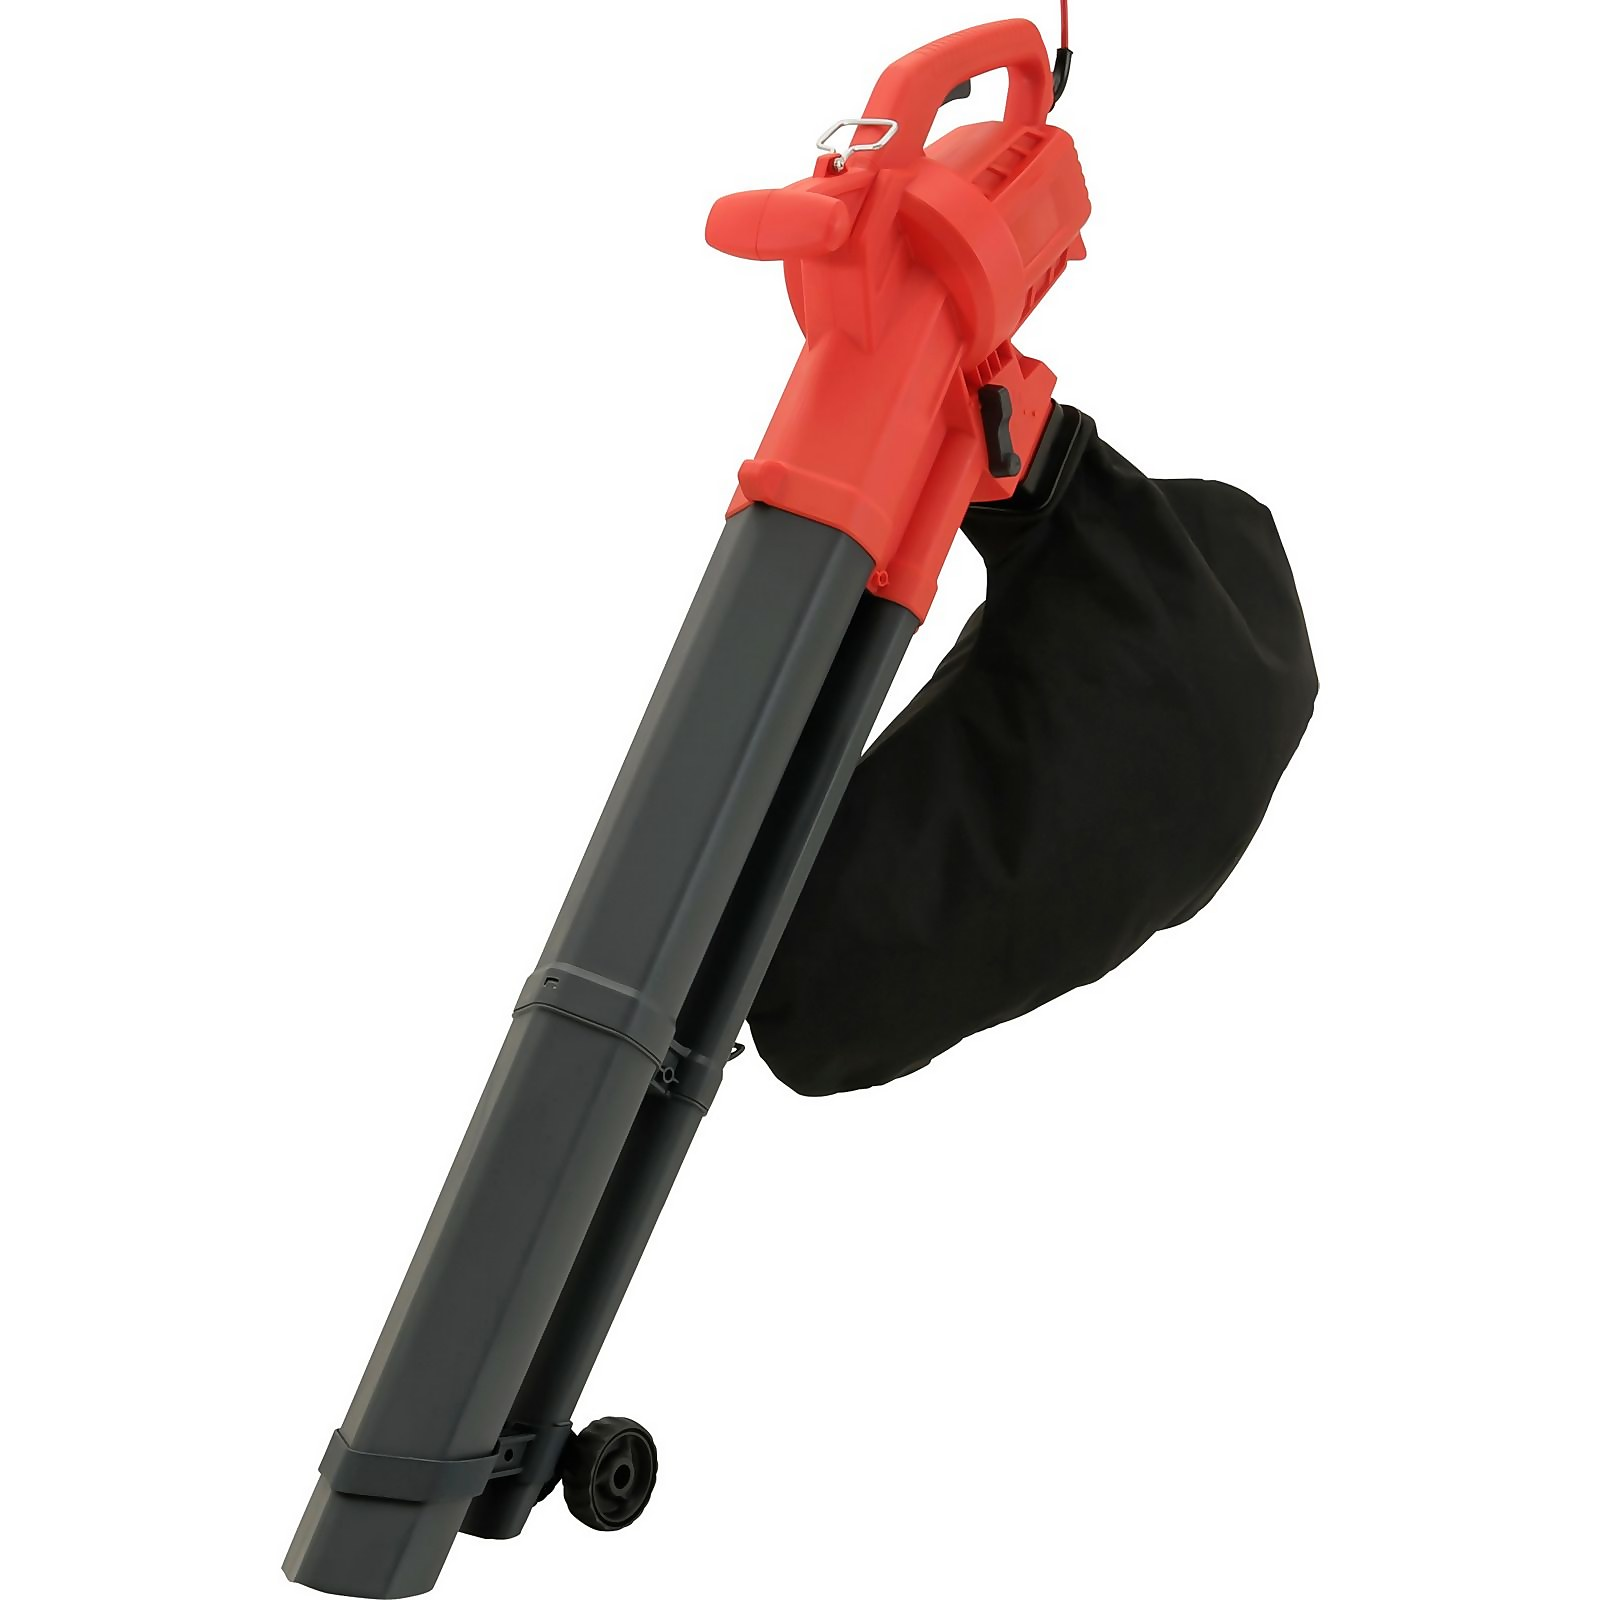 Sovereign 2600W Electric Garden Leaf Blower and Vacuum £21.03 @ Homebase